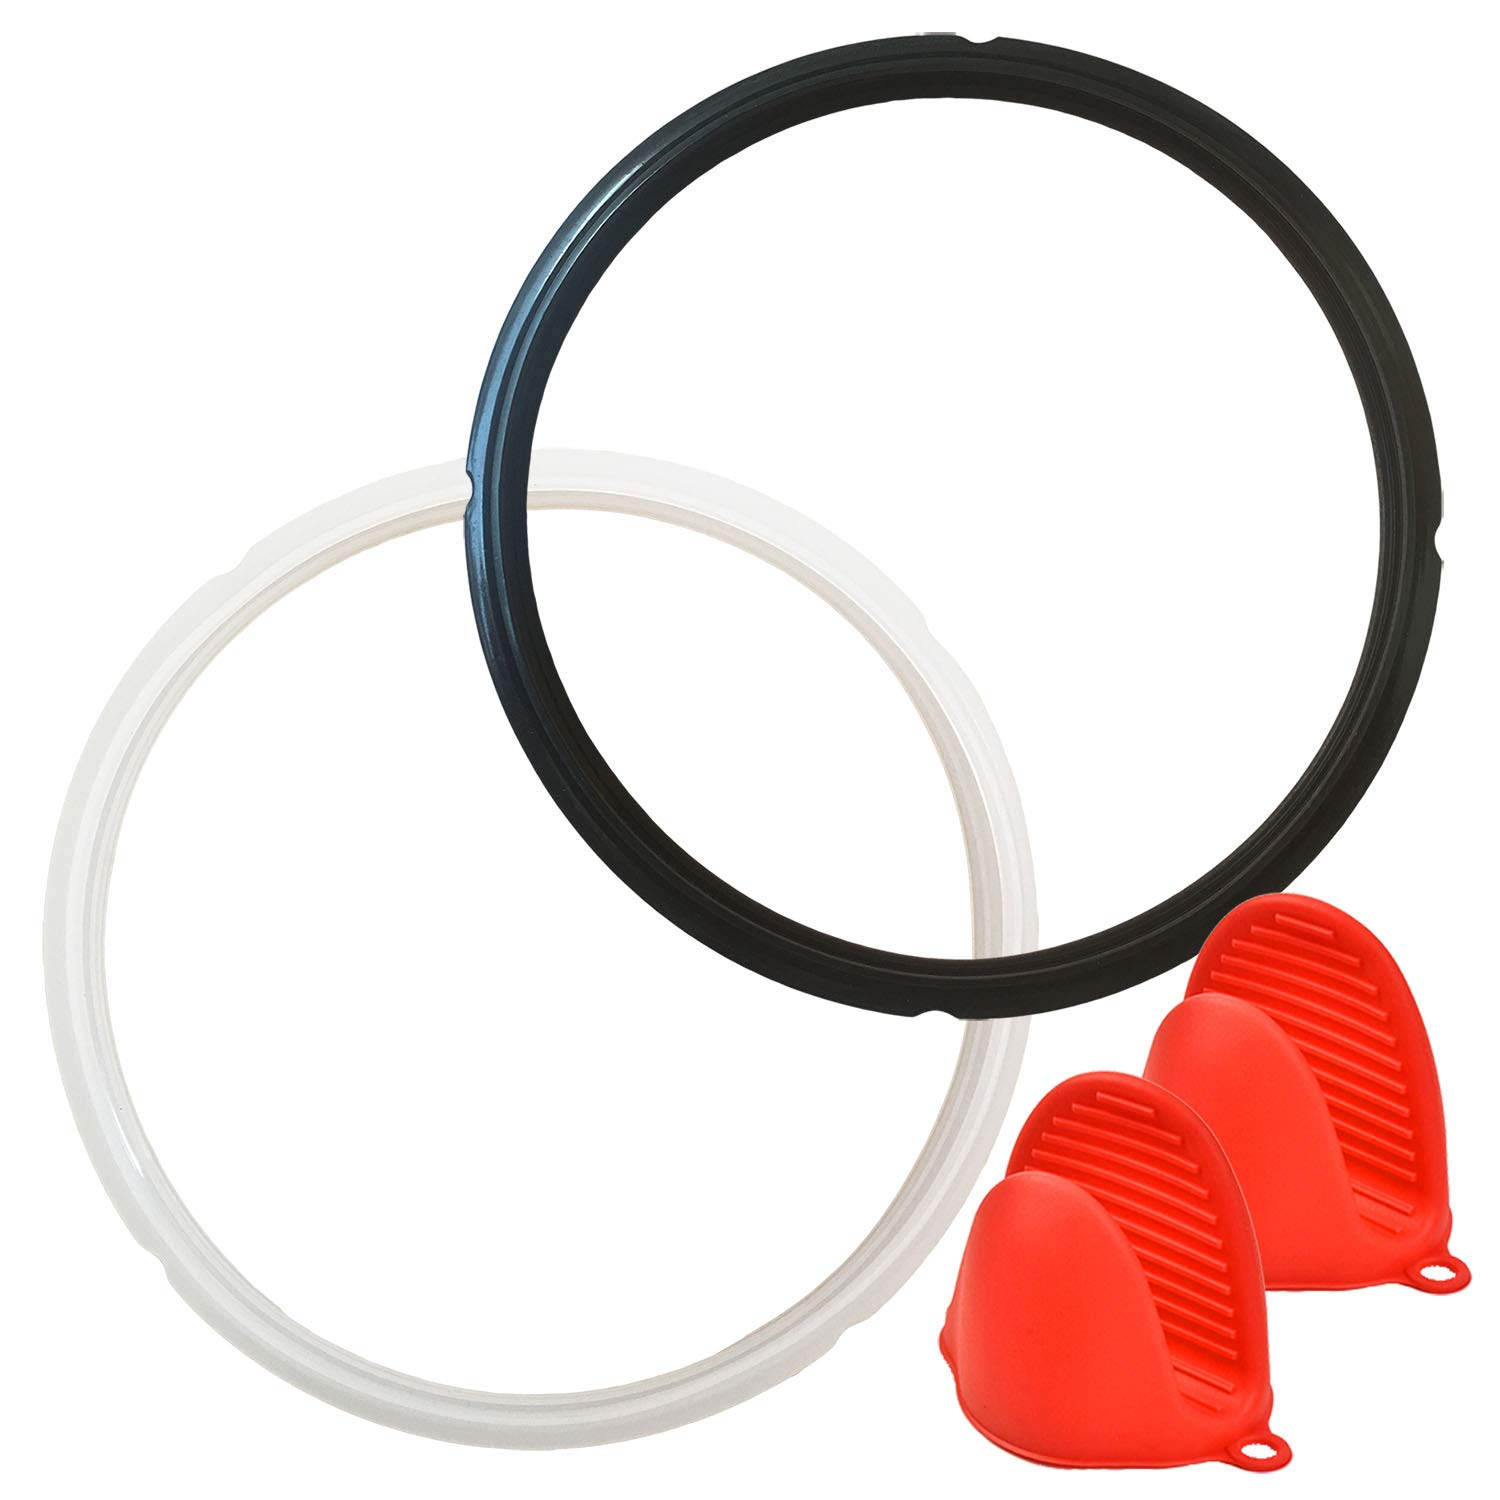 Nice-Components Silicone Sealing Ring for Crock-Pot and Mueller 6 Qt+ Free Silicone Oven Mitts, Sweet and Savory Edition Ring (SCCPPC600-V1)